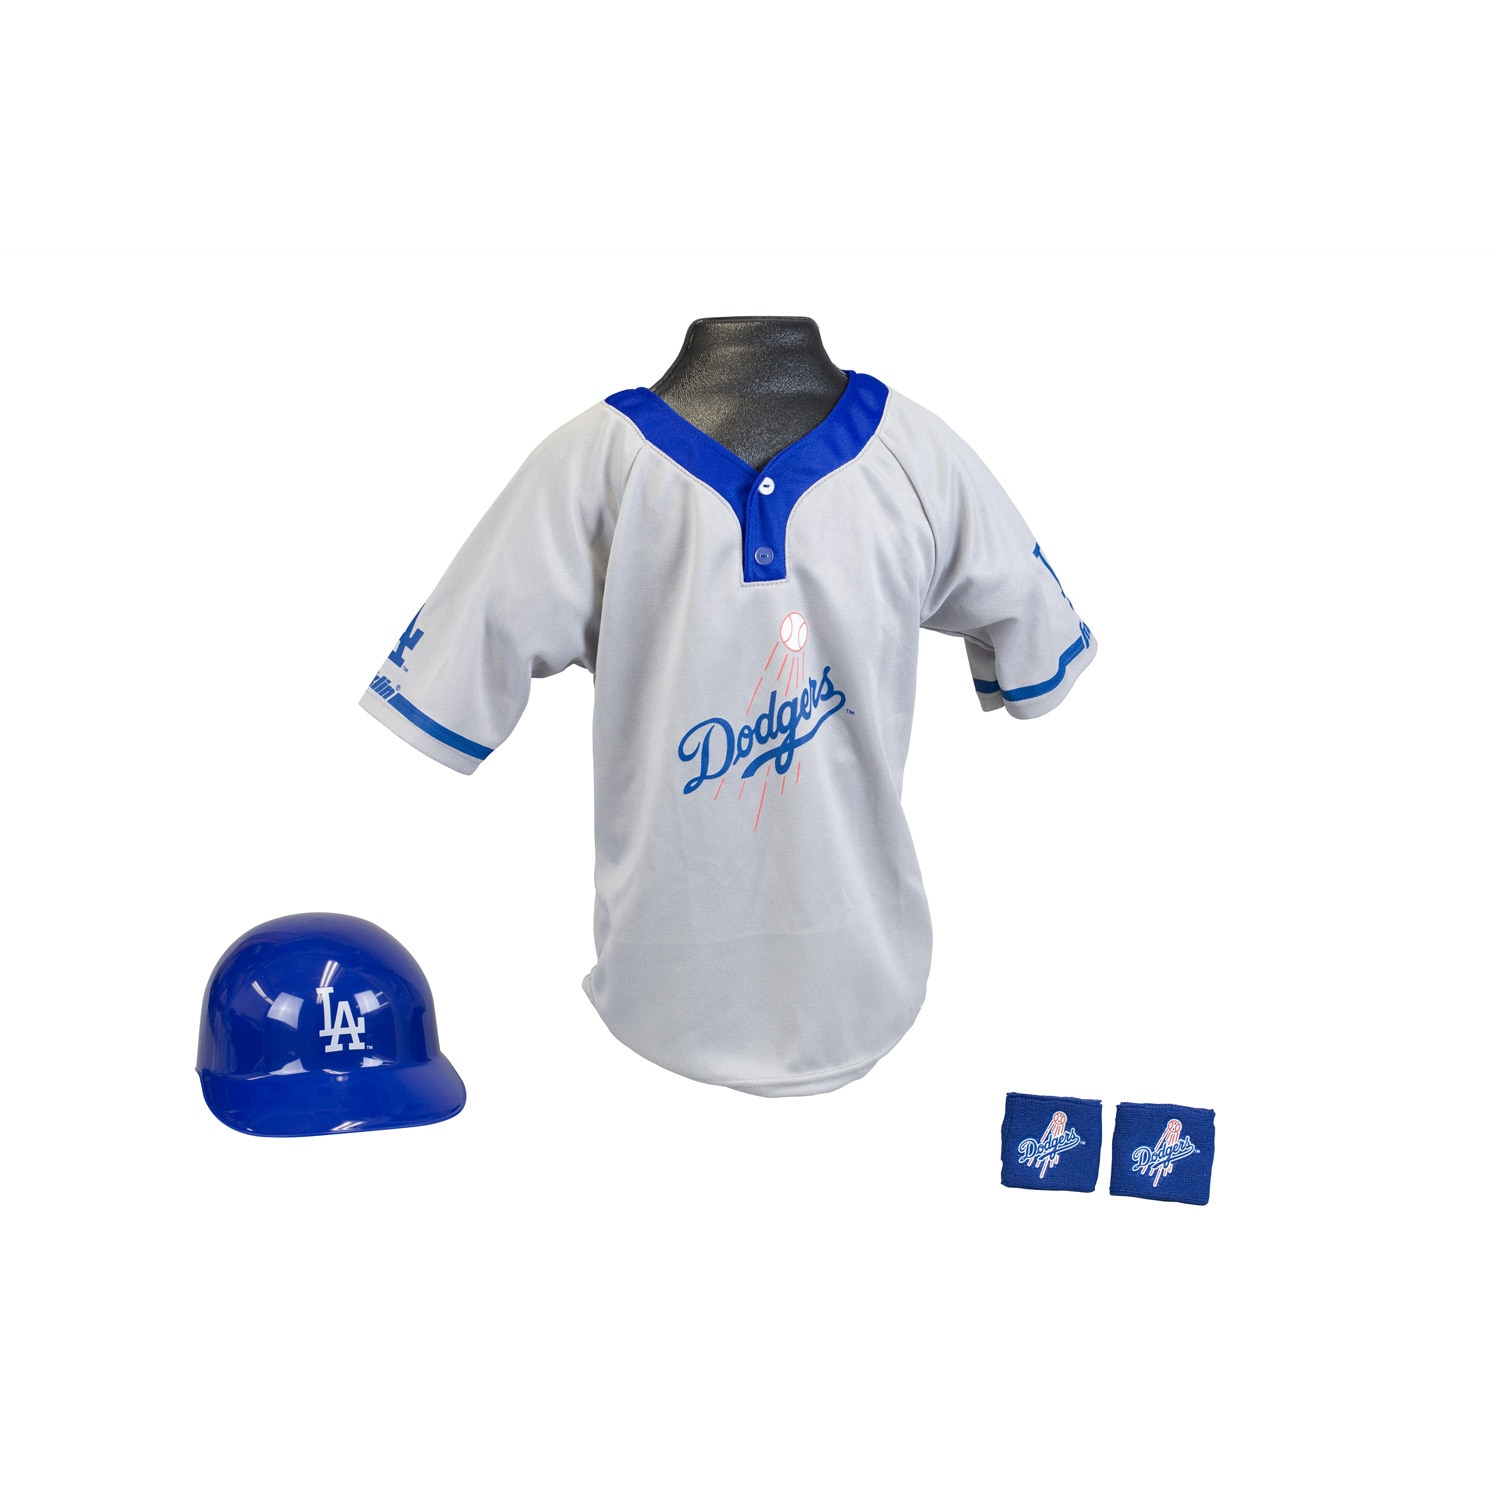 Franklin Sports Kids MLB Los Angeles Dodgers Team Uniform Set